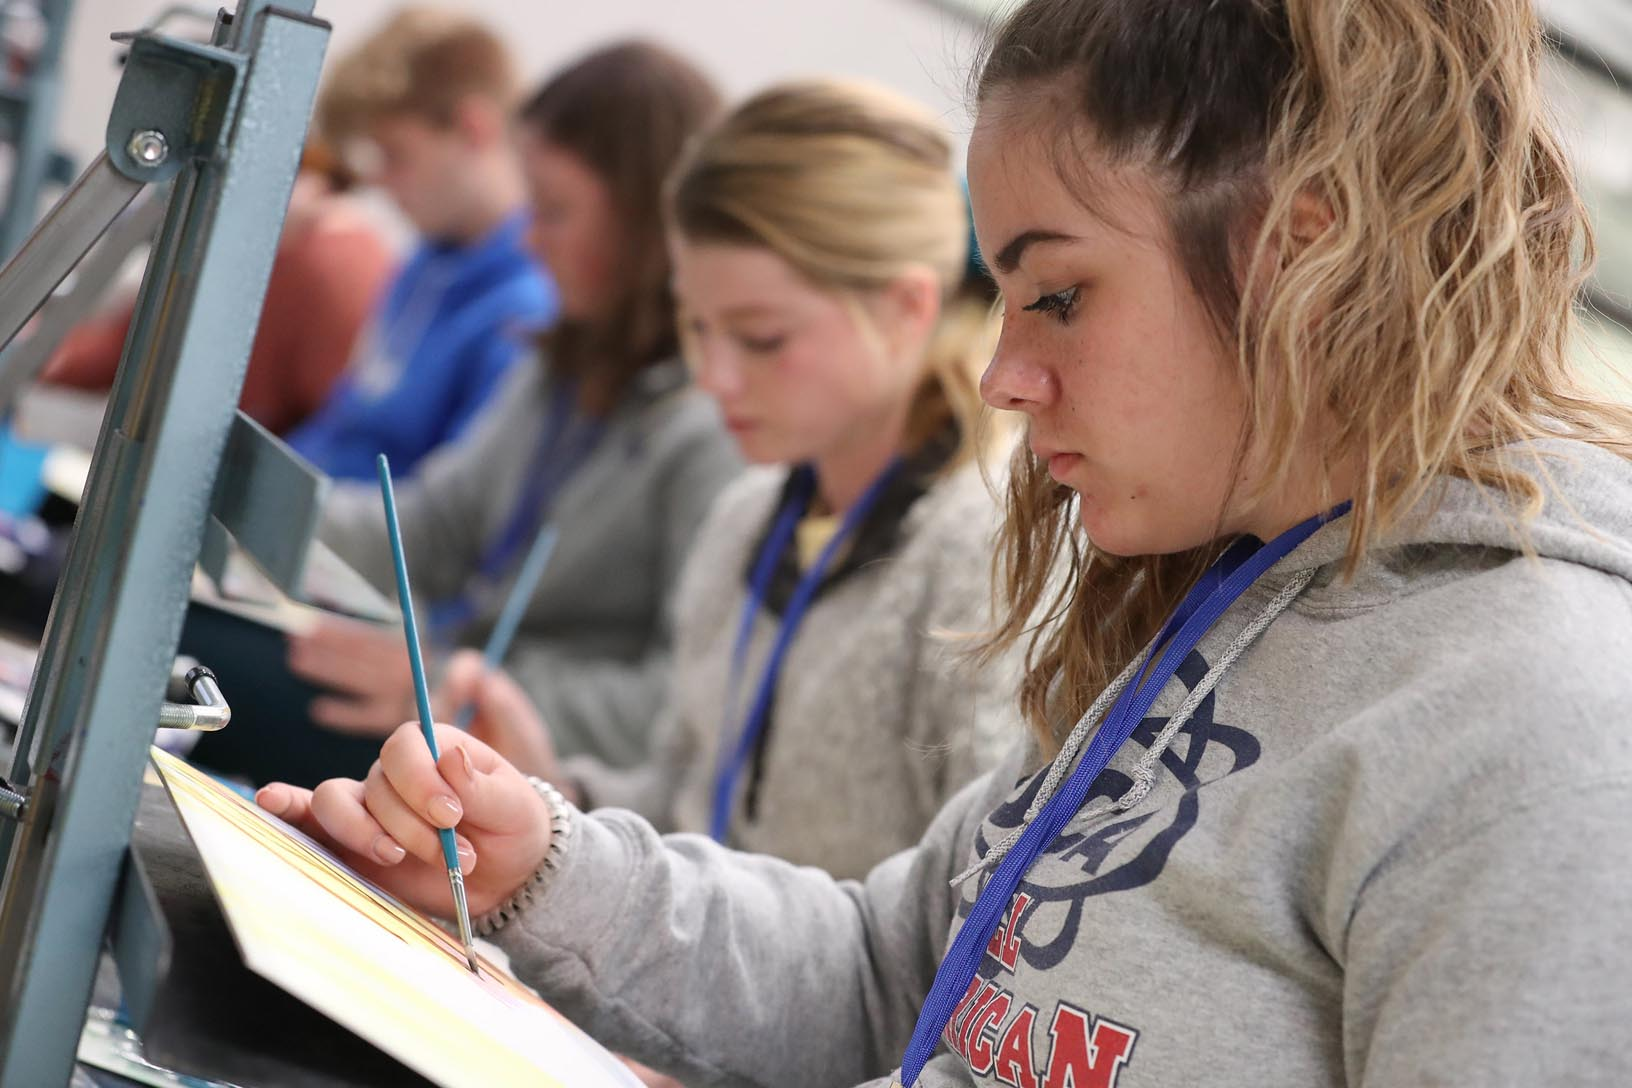 Gothenburg High School student Bailey Bryant works on a painting in the watercolor workshop during Imagination Day at UNK. More than 100 students from a dozen Nebraska high schools attended Wednesday's event hosted by UNK's Department of Art and Design. (Photos by Corbey R. Dorsey, UNK Communications)